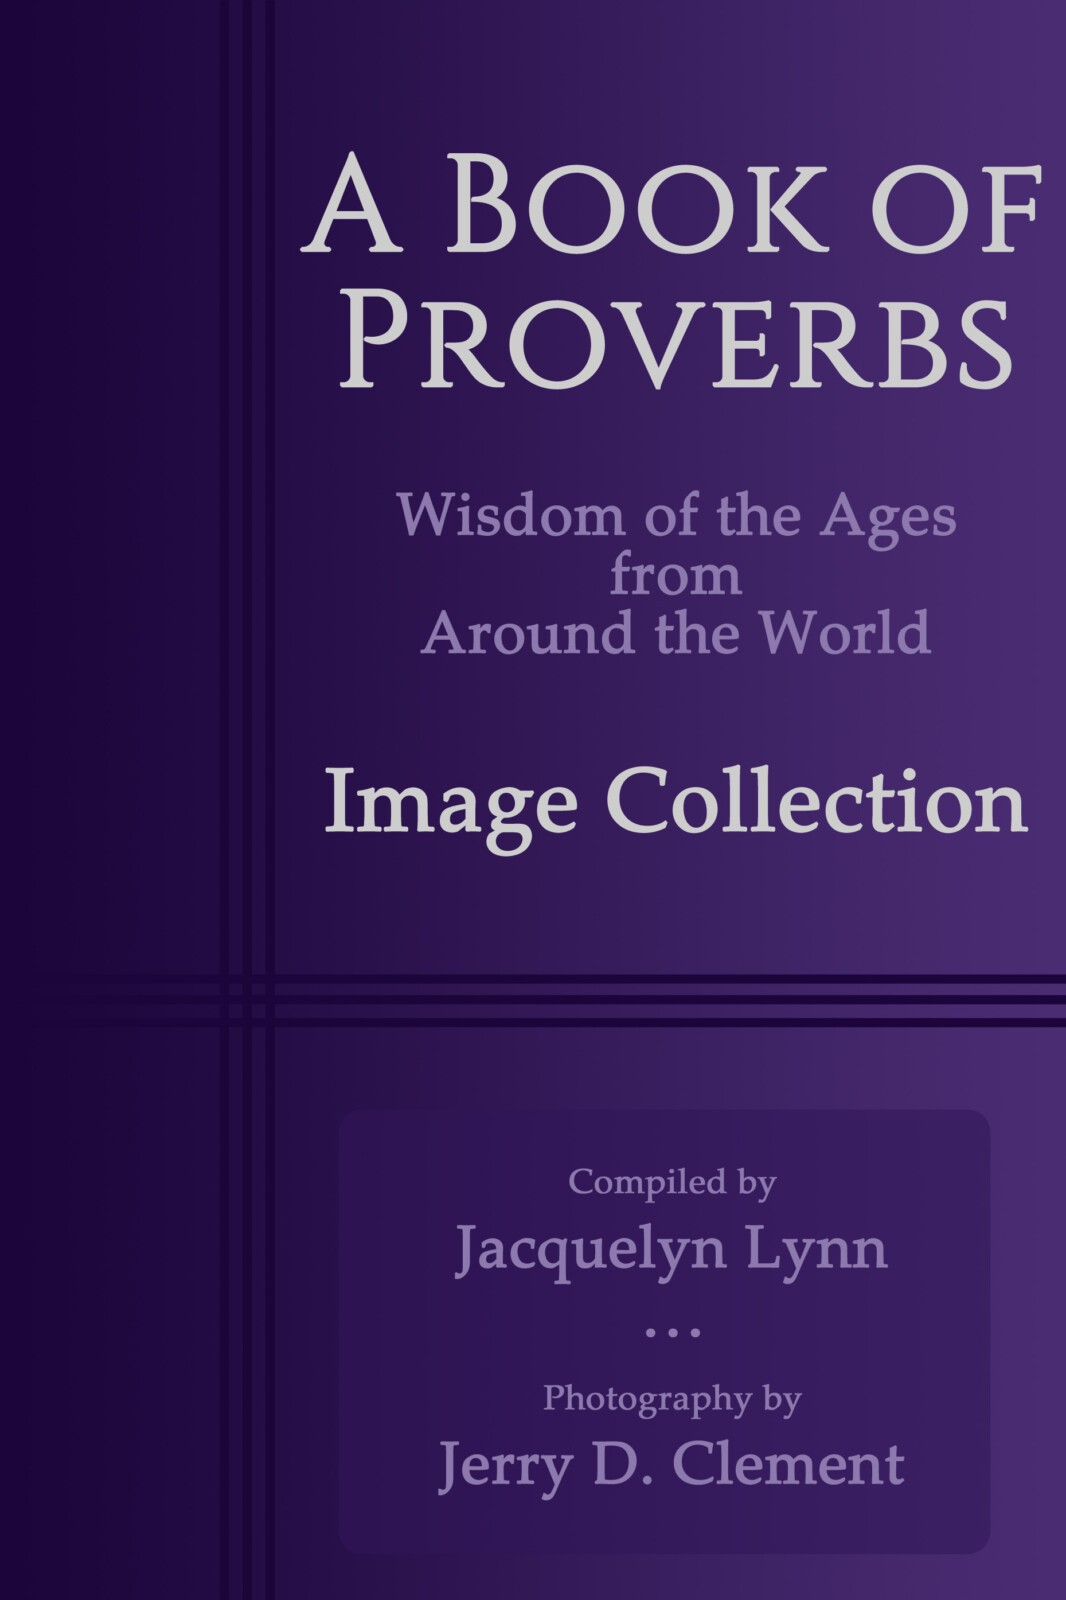 A Book Of Proverbs Image Collection